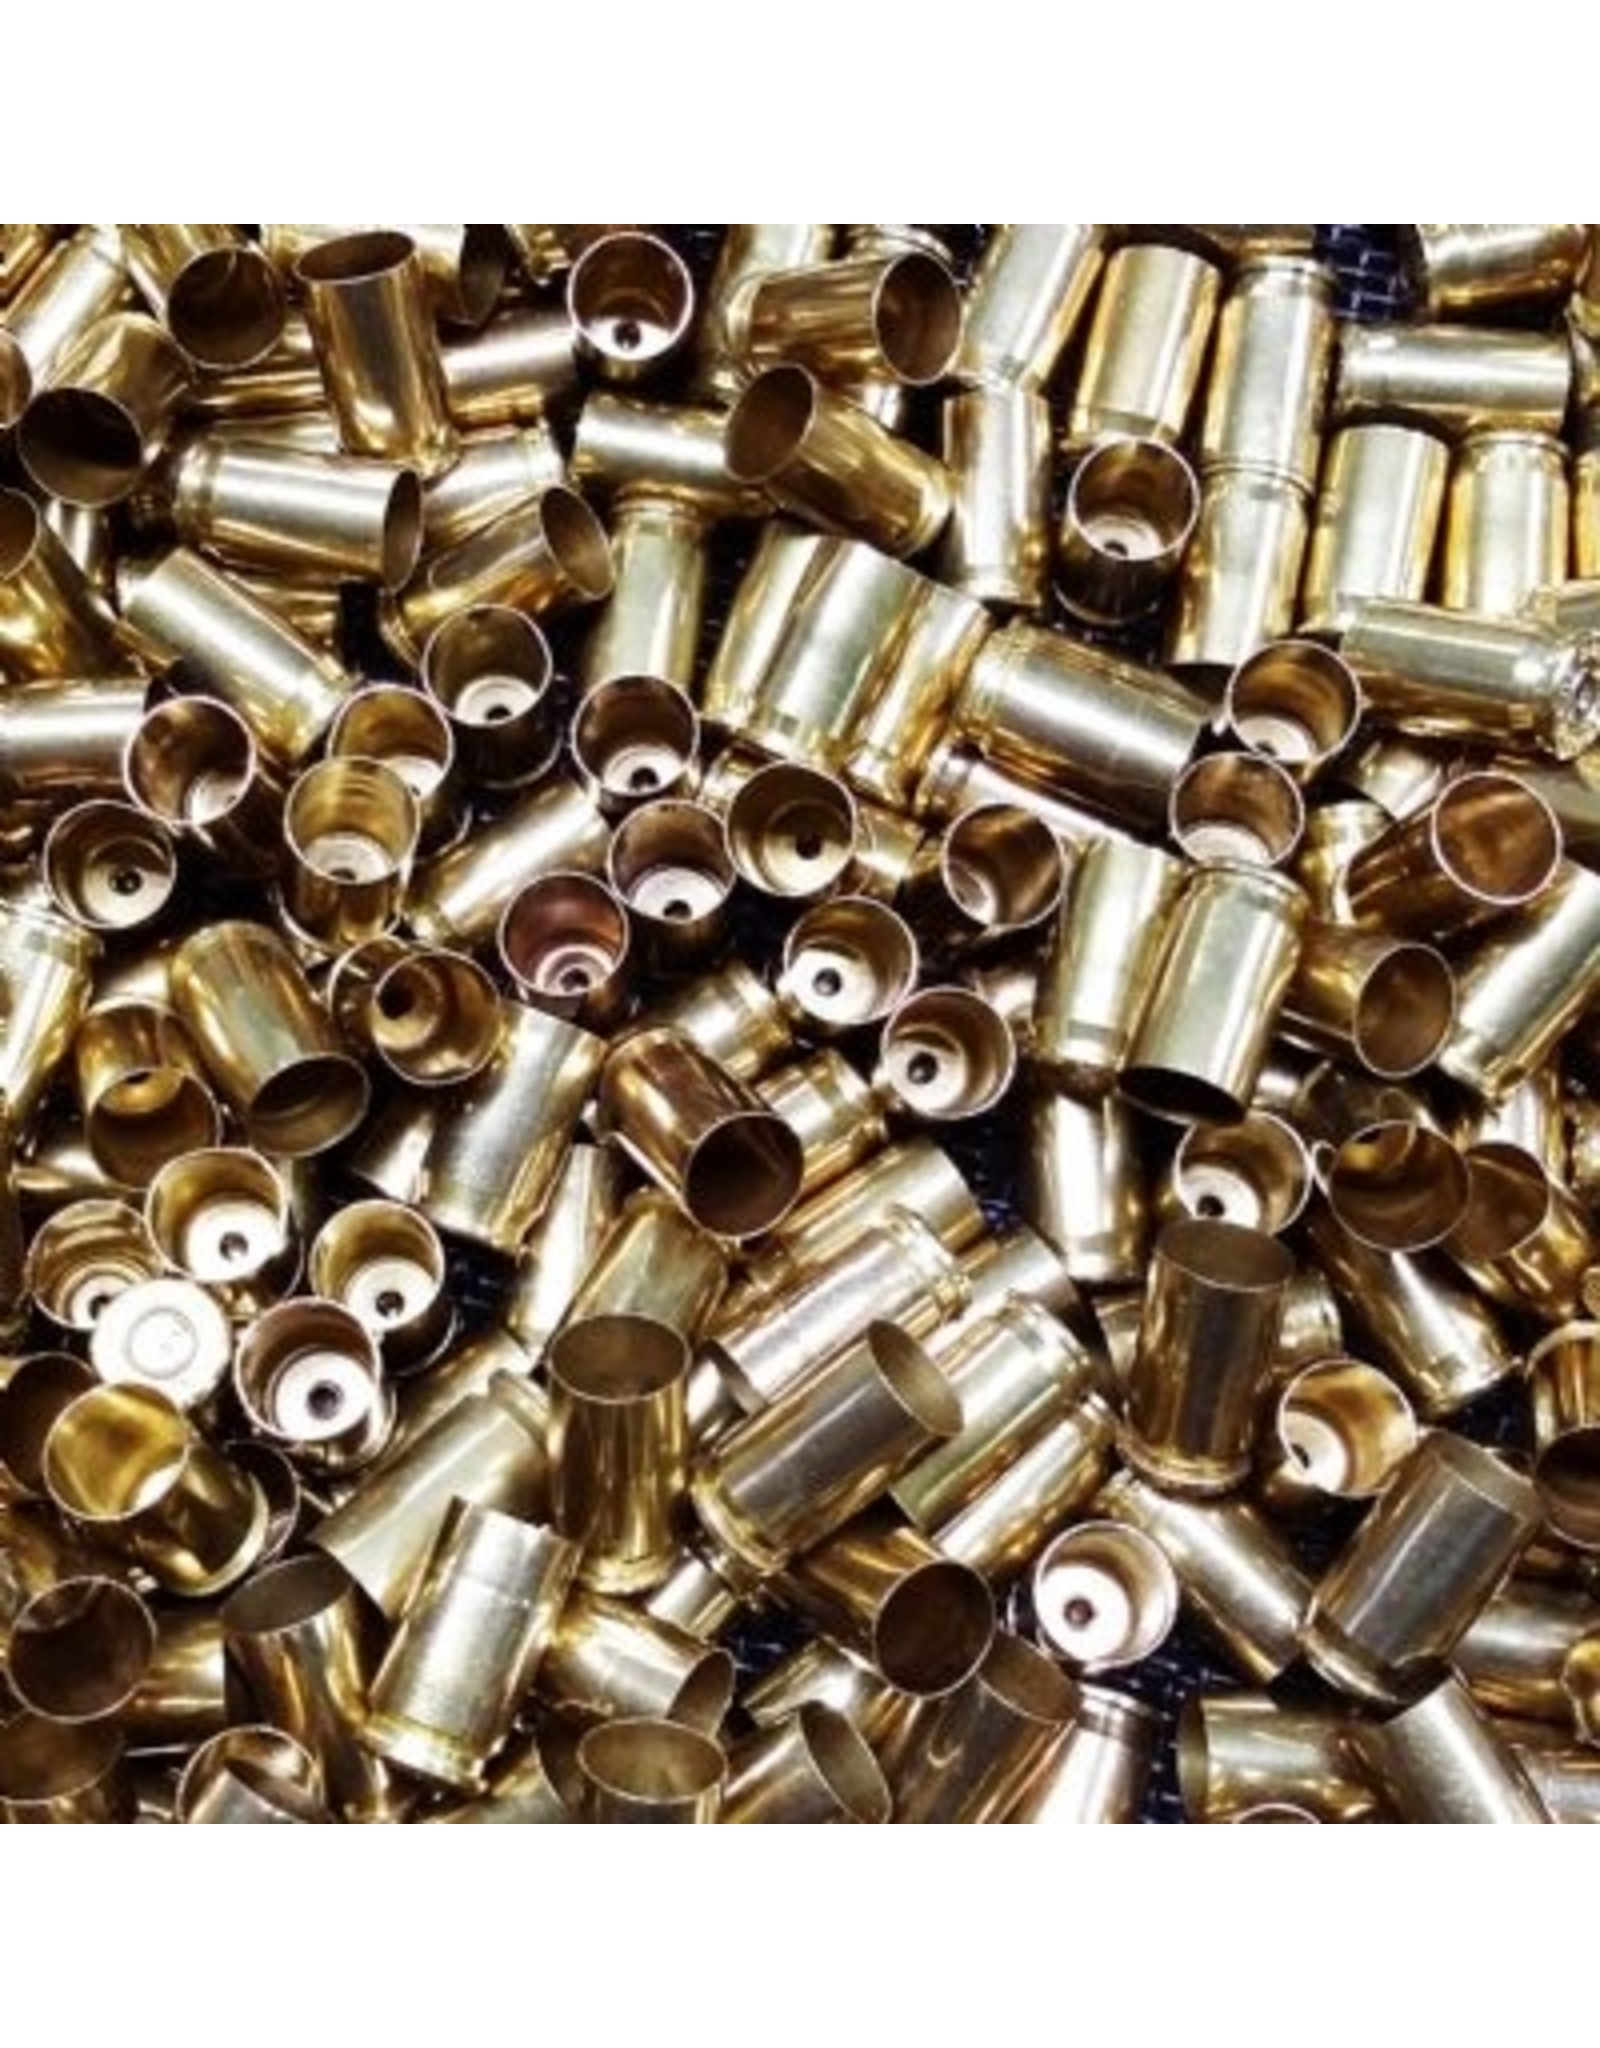 .25-35 Win Brass - 17 Count